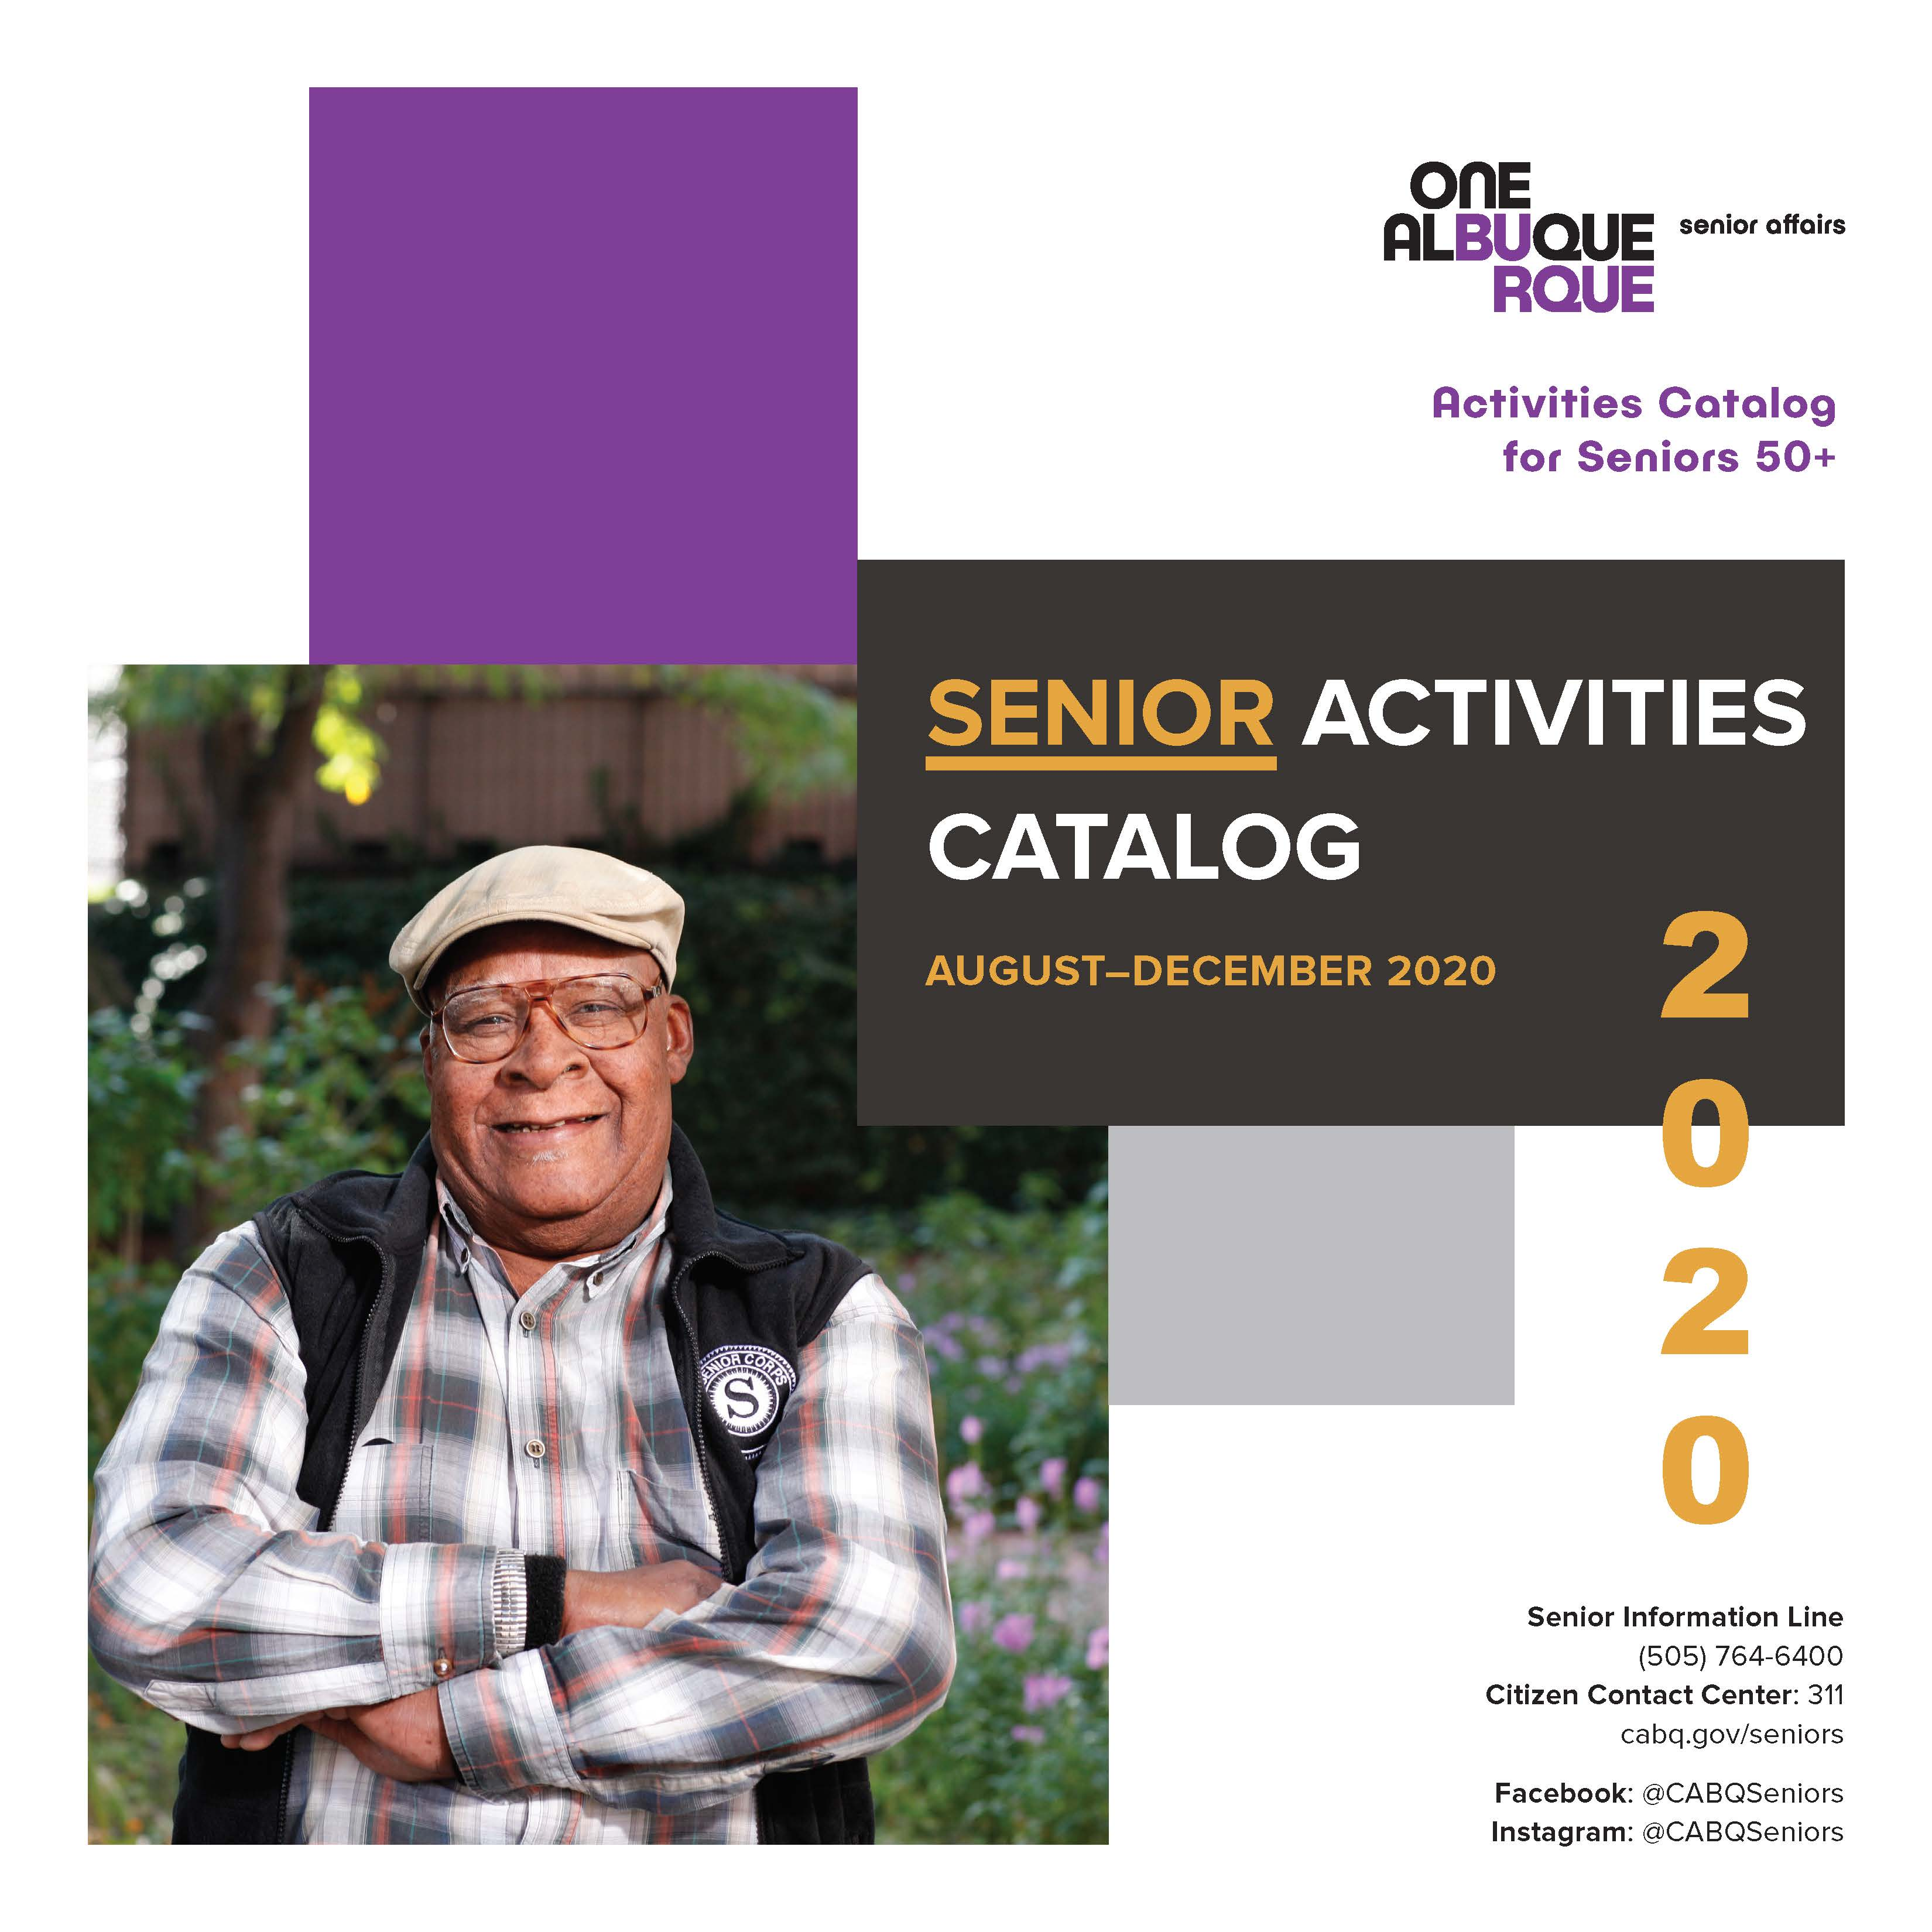 The cover of the 2019 July to December Department of Senior Affairs Activities Catalog.